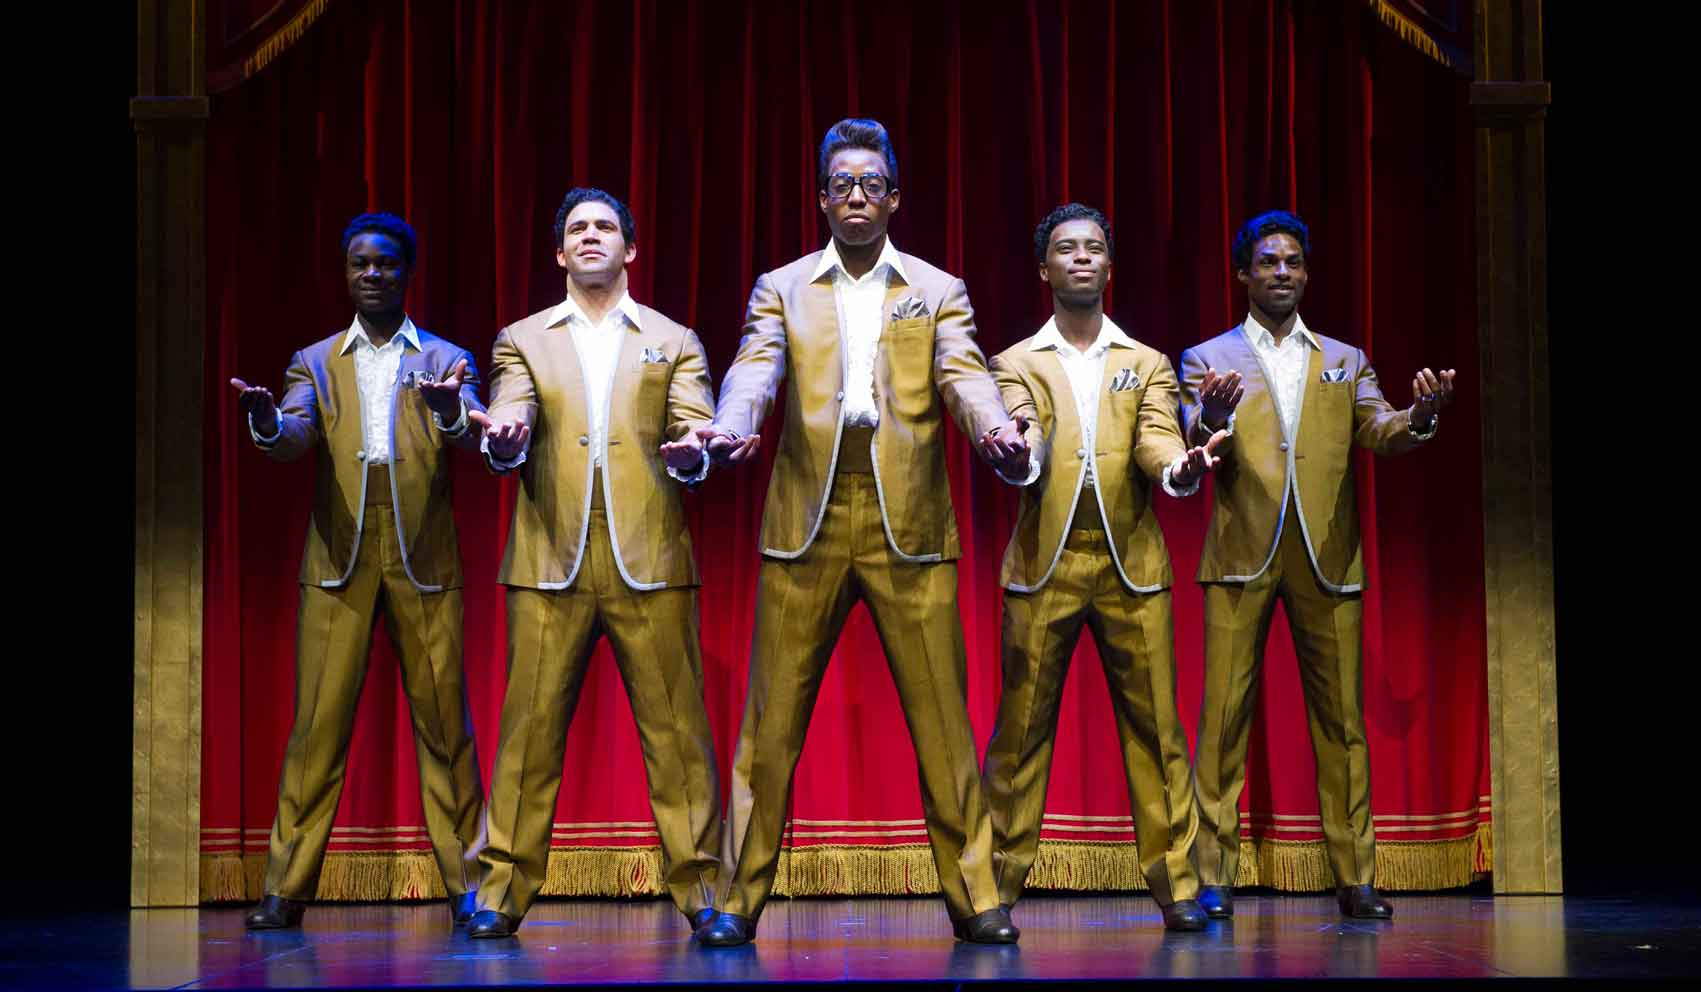 l-r Eddie Elliott, Simon Ray Harvey, Simeon Montague, Joshua Liburd, Brandon Lee Sears as The Temptations in Motown the Musical. Photo: Alastair Muir | First Look: Motown the Musical